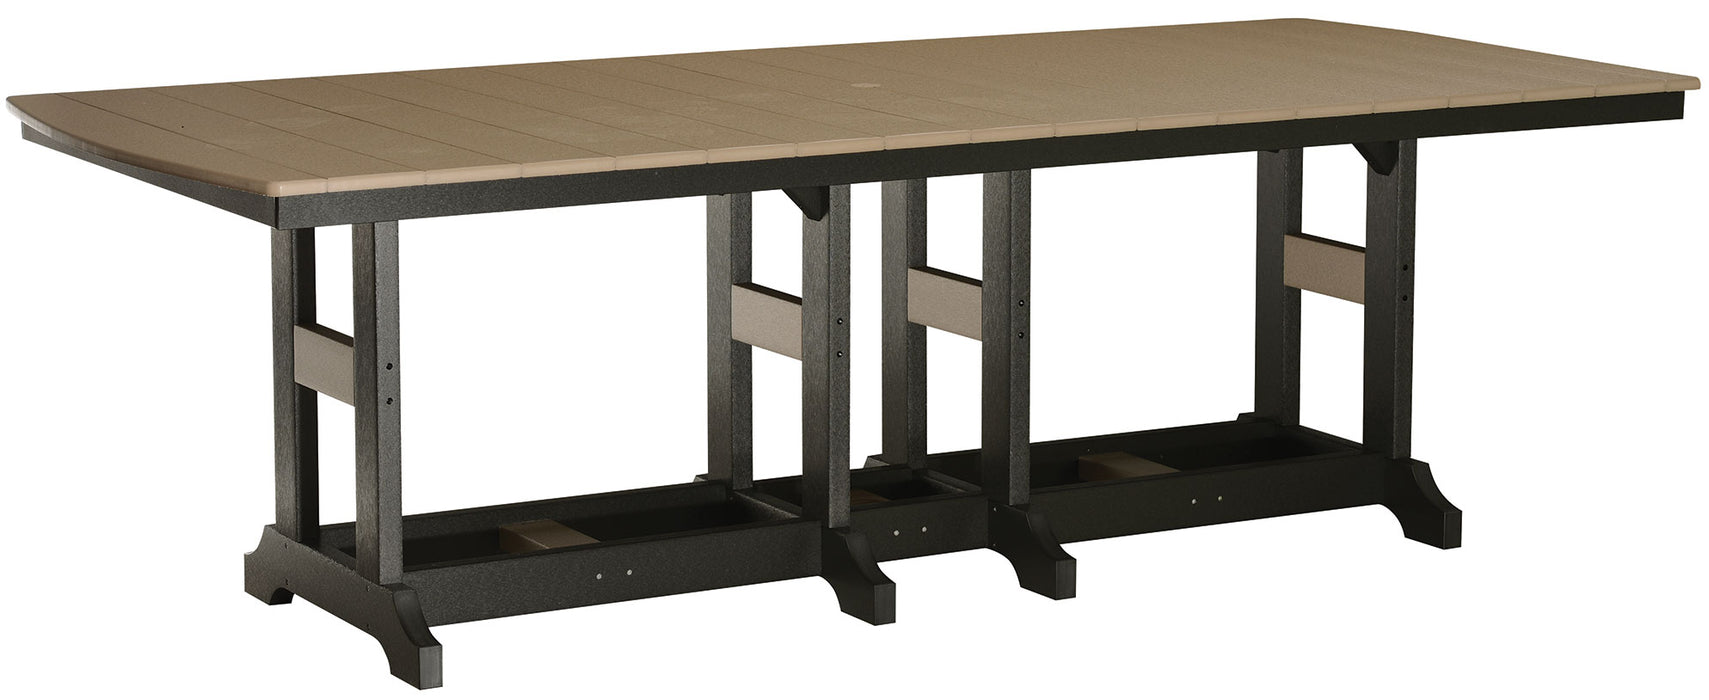 "Berlin Gardens Garden Classic 44"" x 96"" Rectangular Table - Bar Height"